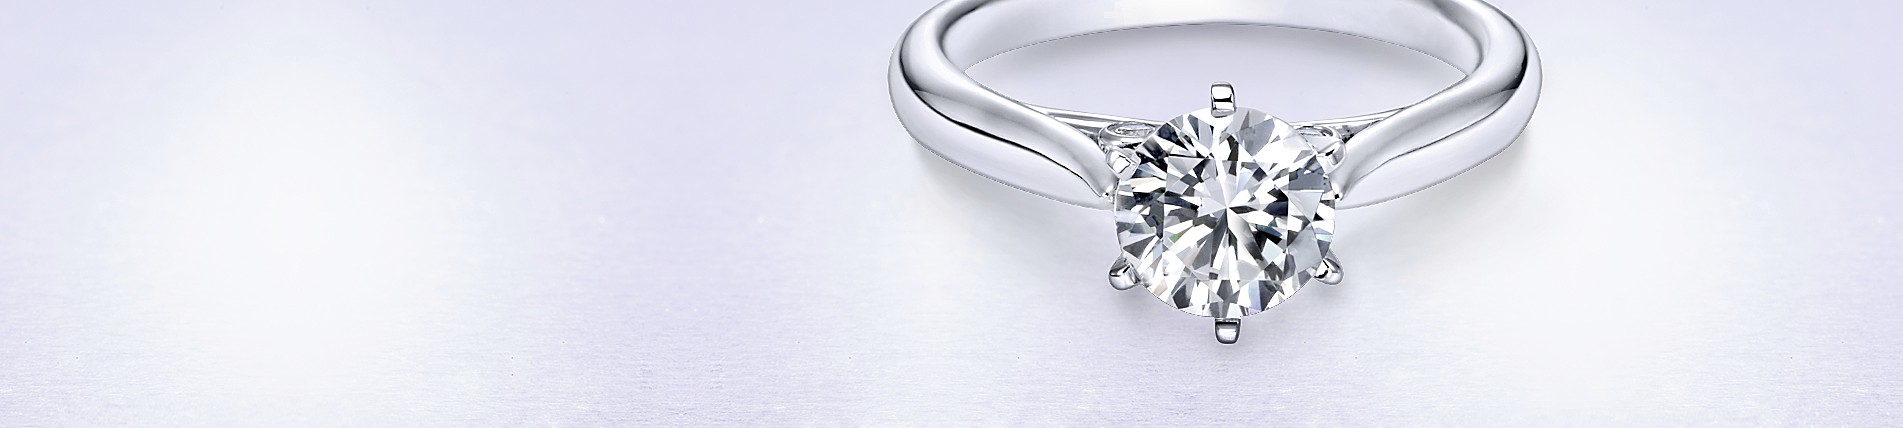 ring with joyous band download wedding solitare bands engagement round solitaire diamond